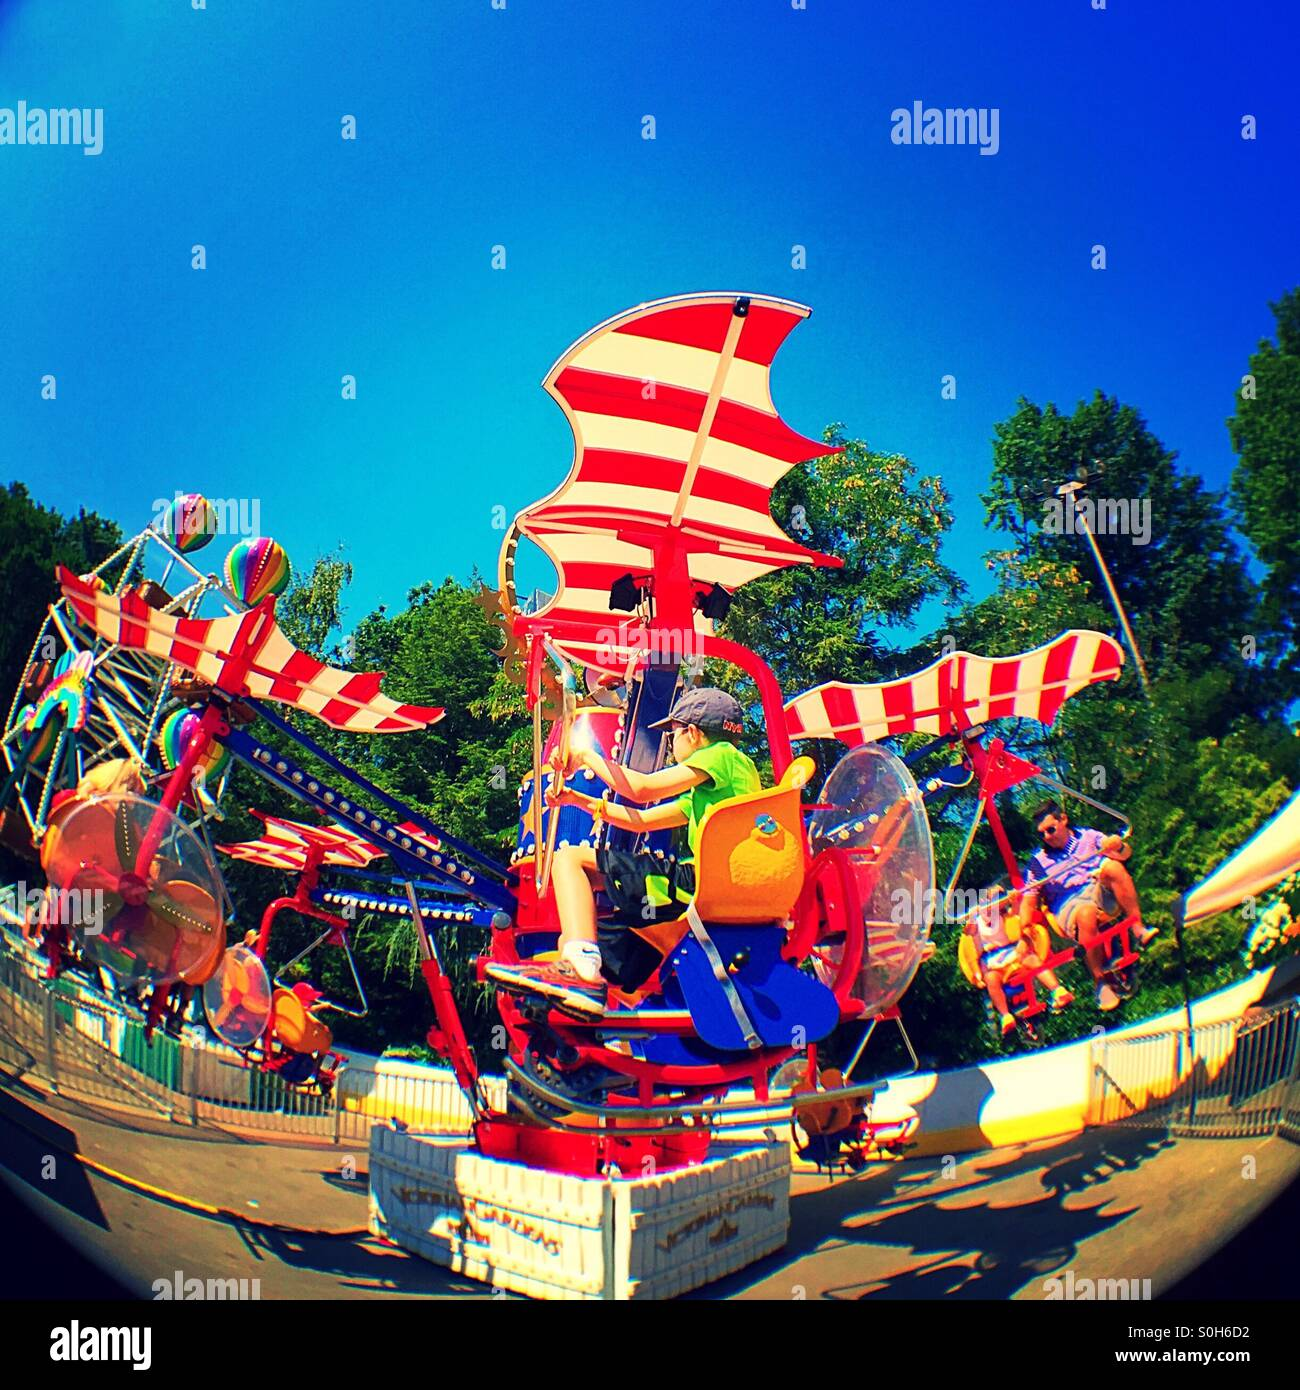 Carnival Ride In Central Park In Victoria Gardens New York City Usa Stock Photo Royalty Free